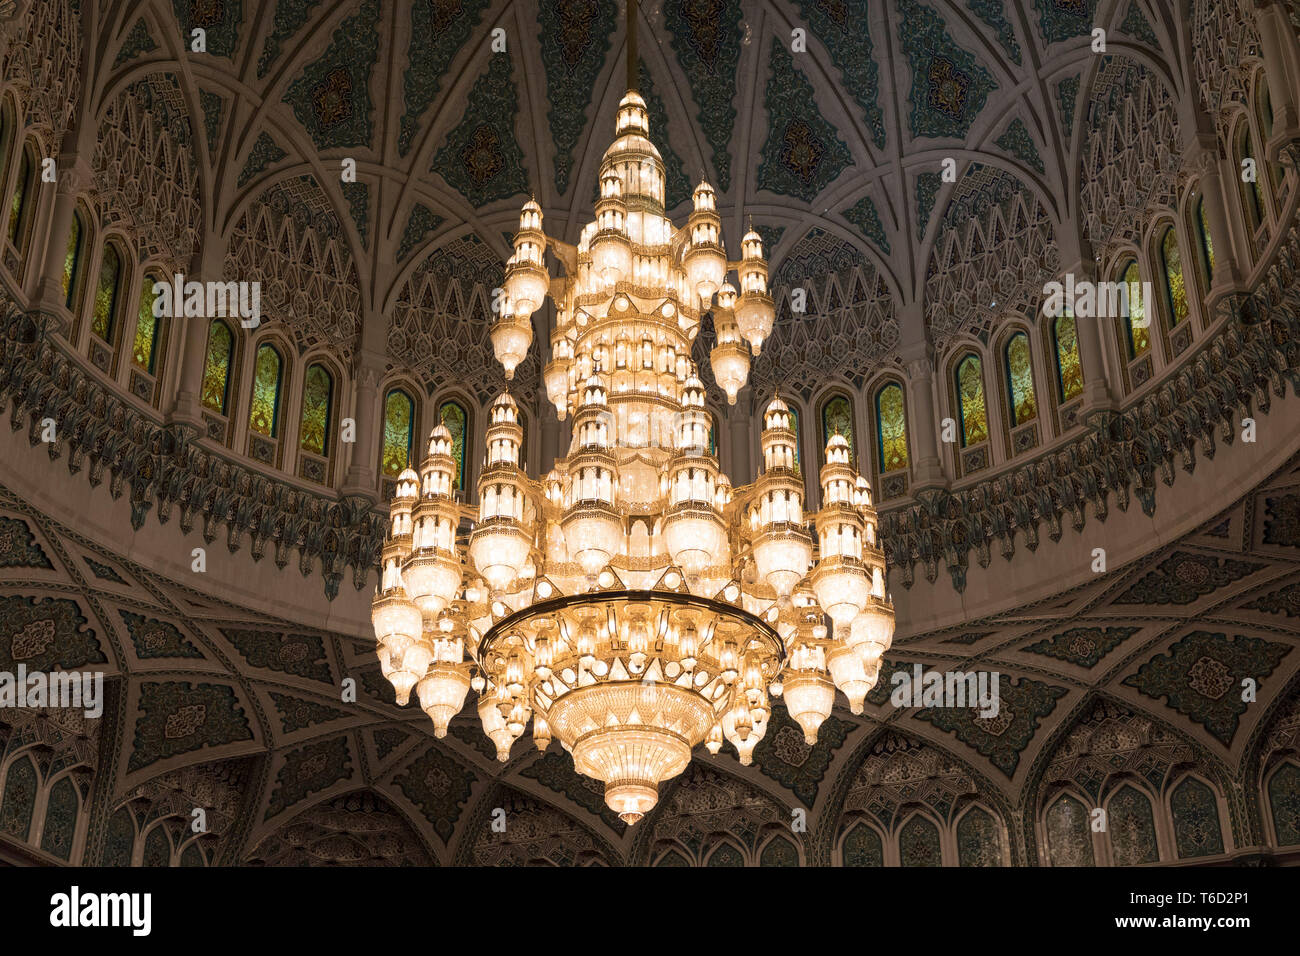 Oman, Muscat, the Swarovski crystal chandelier inside the main prayer hall of the Sultan qaboos grand mosque - Stock Image